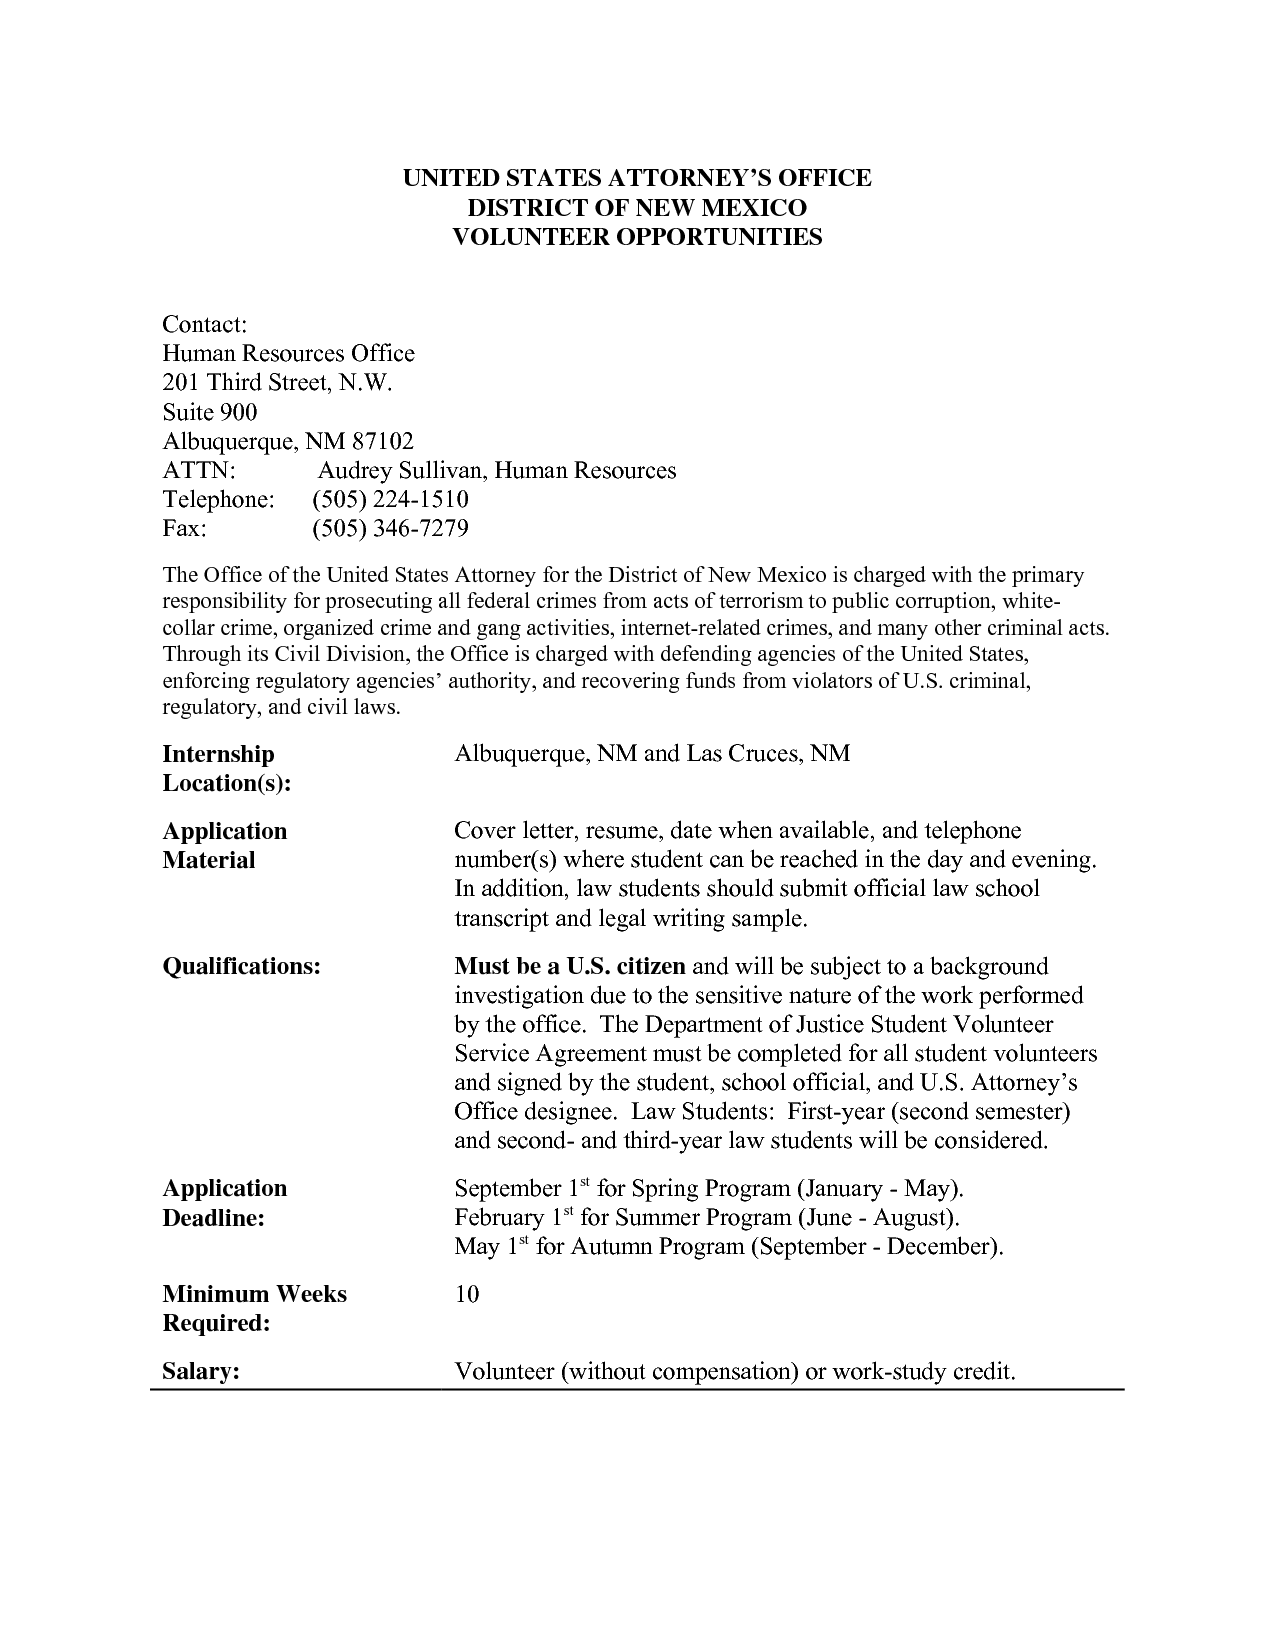 Social Work Resume Sample Volunteer Work On Resumevolunteer Work On Resume Application